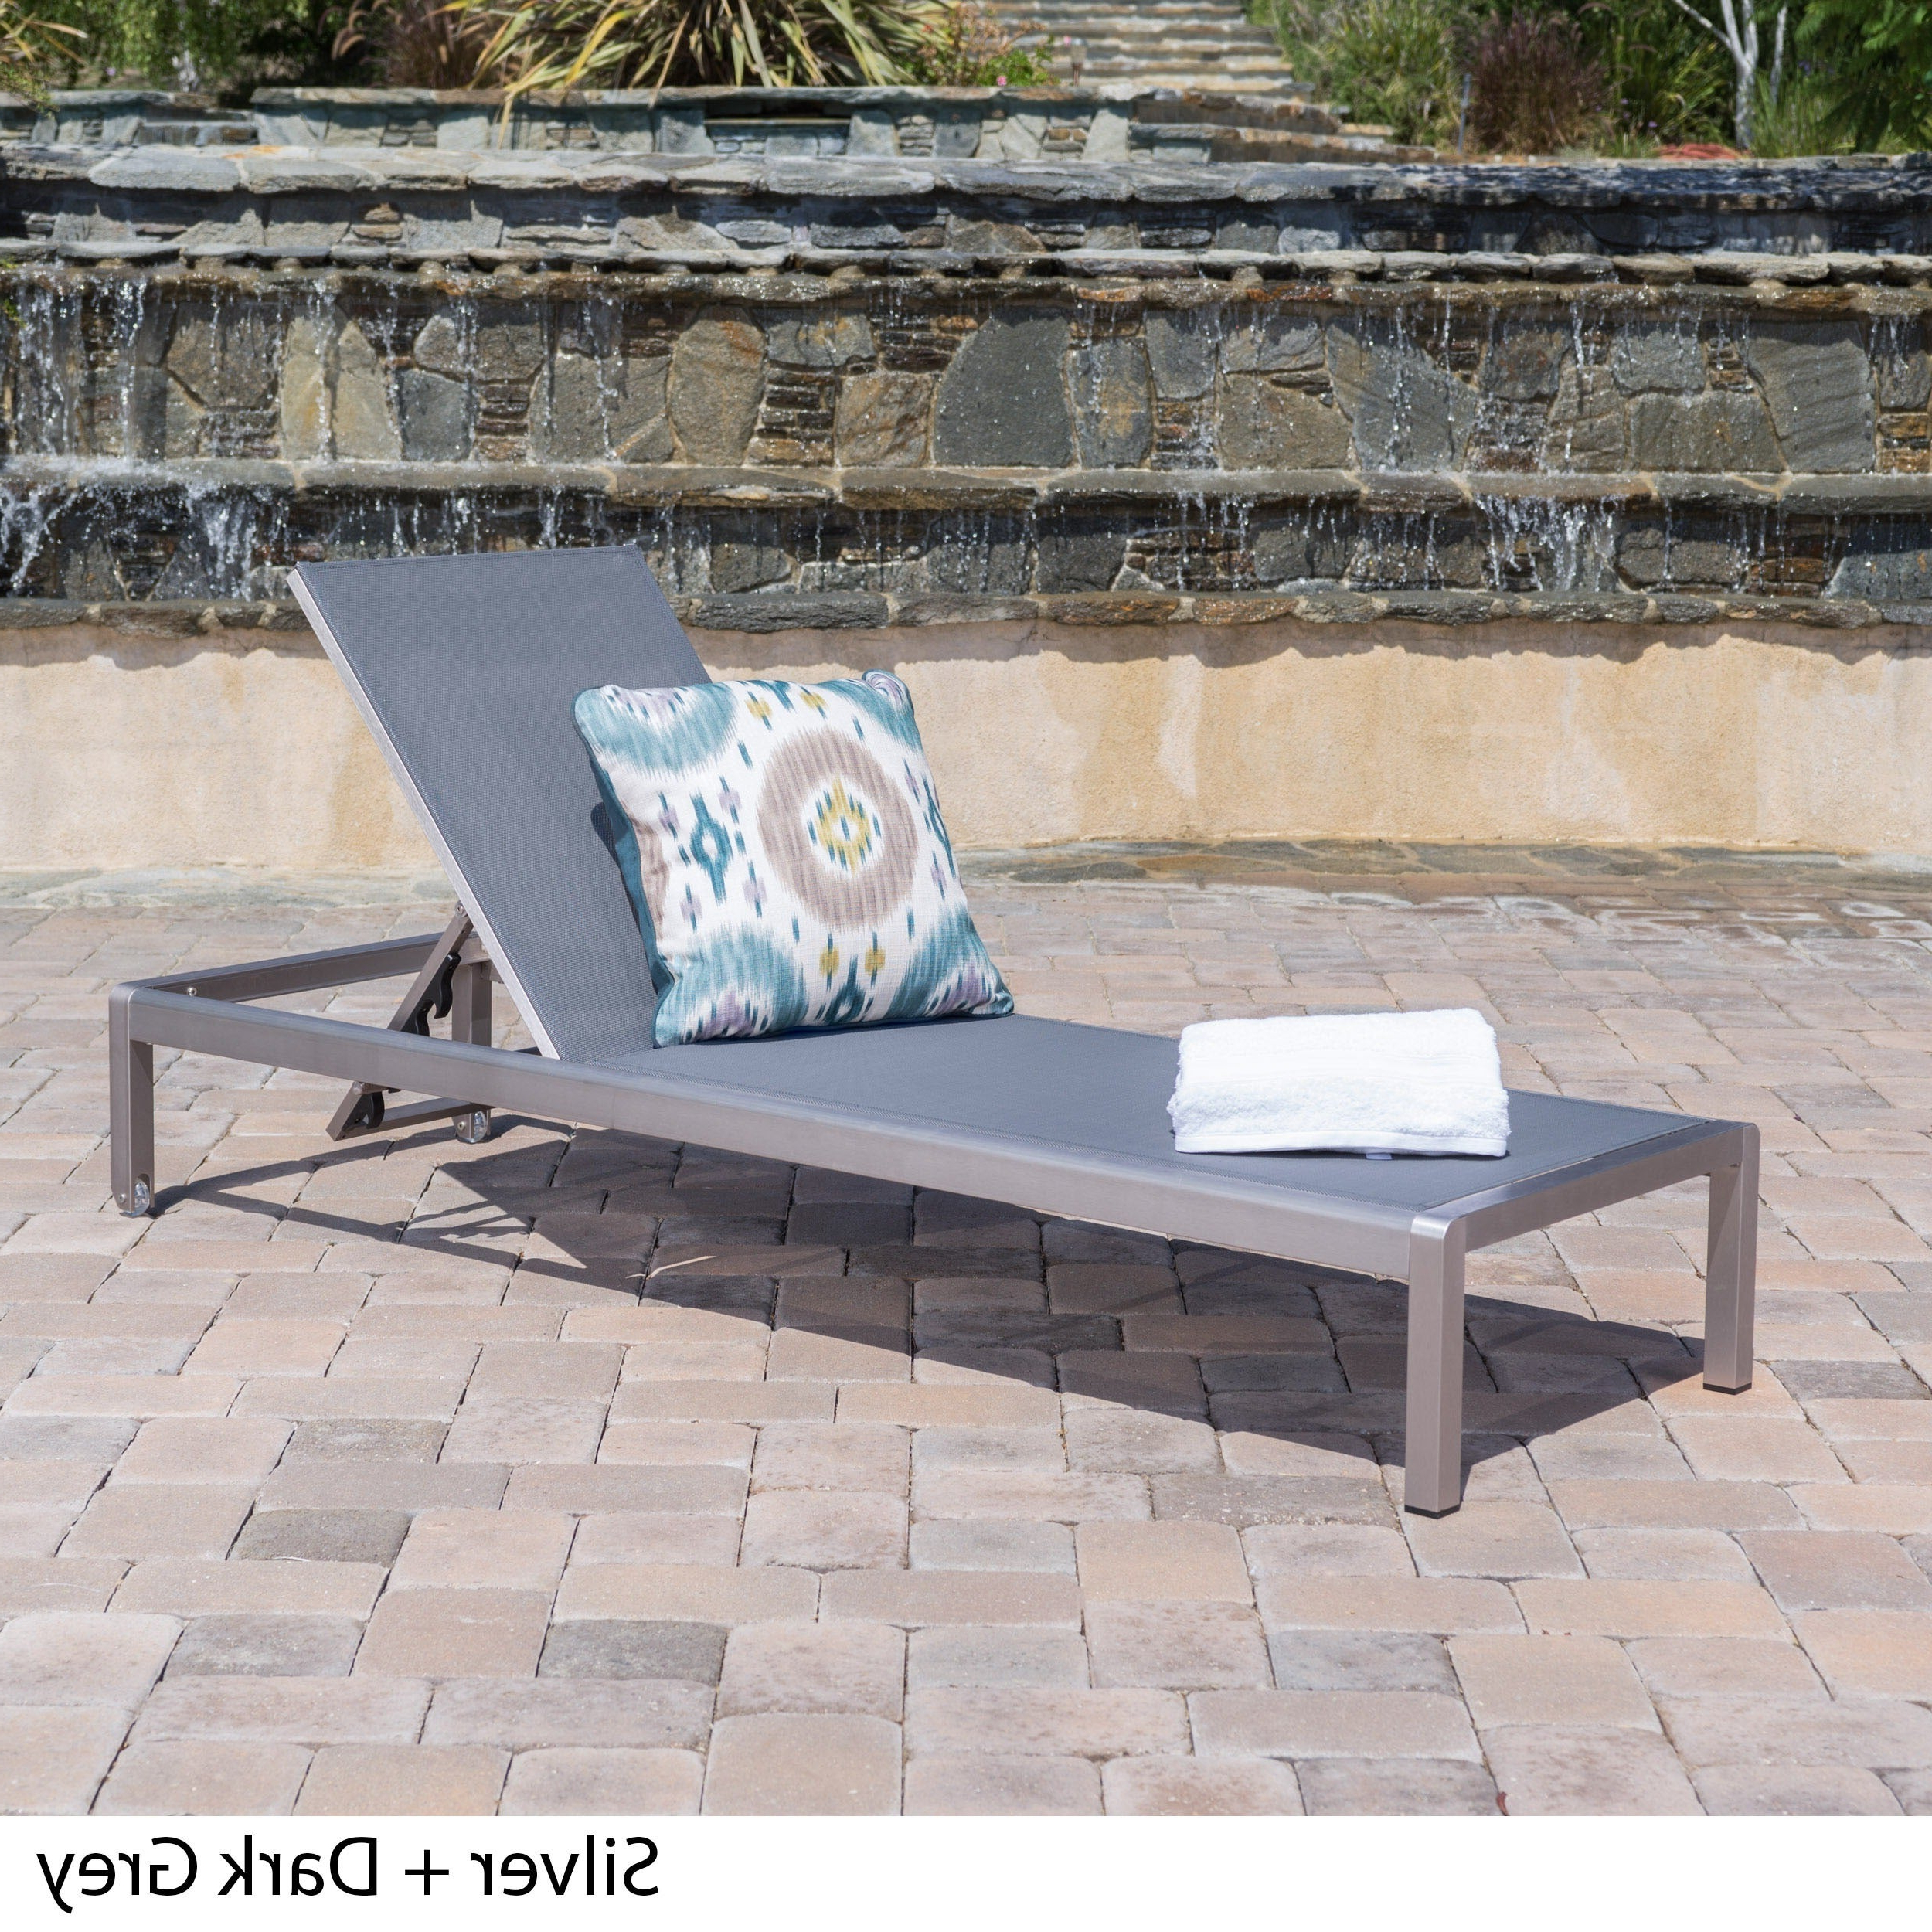 2019 Cape Coral Outdoor Aluminum Adjustable Chaise Loungechristopher Knight  Home Pertaining To Outdoor Aluminum Adjustable Chaise Lounges (View 1 of 25)